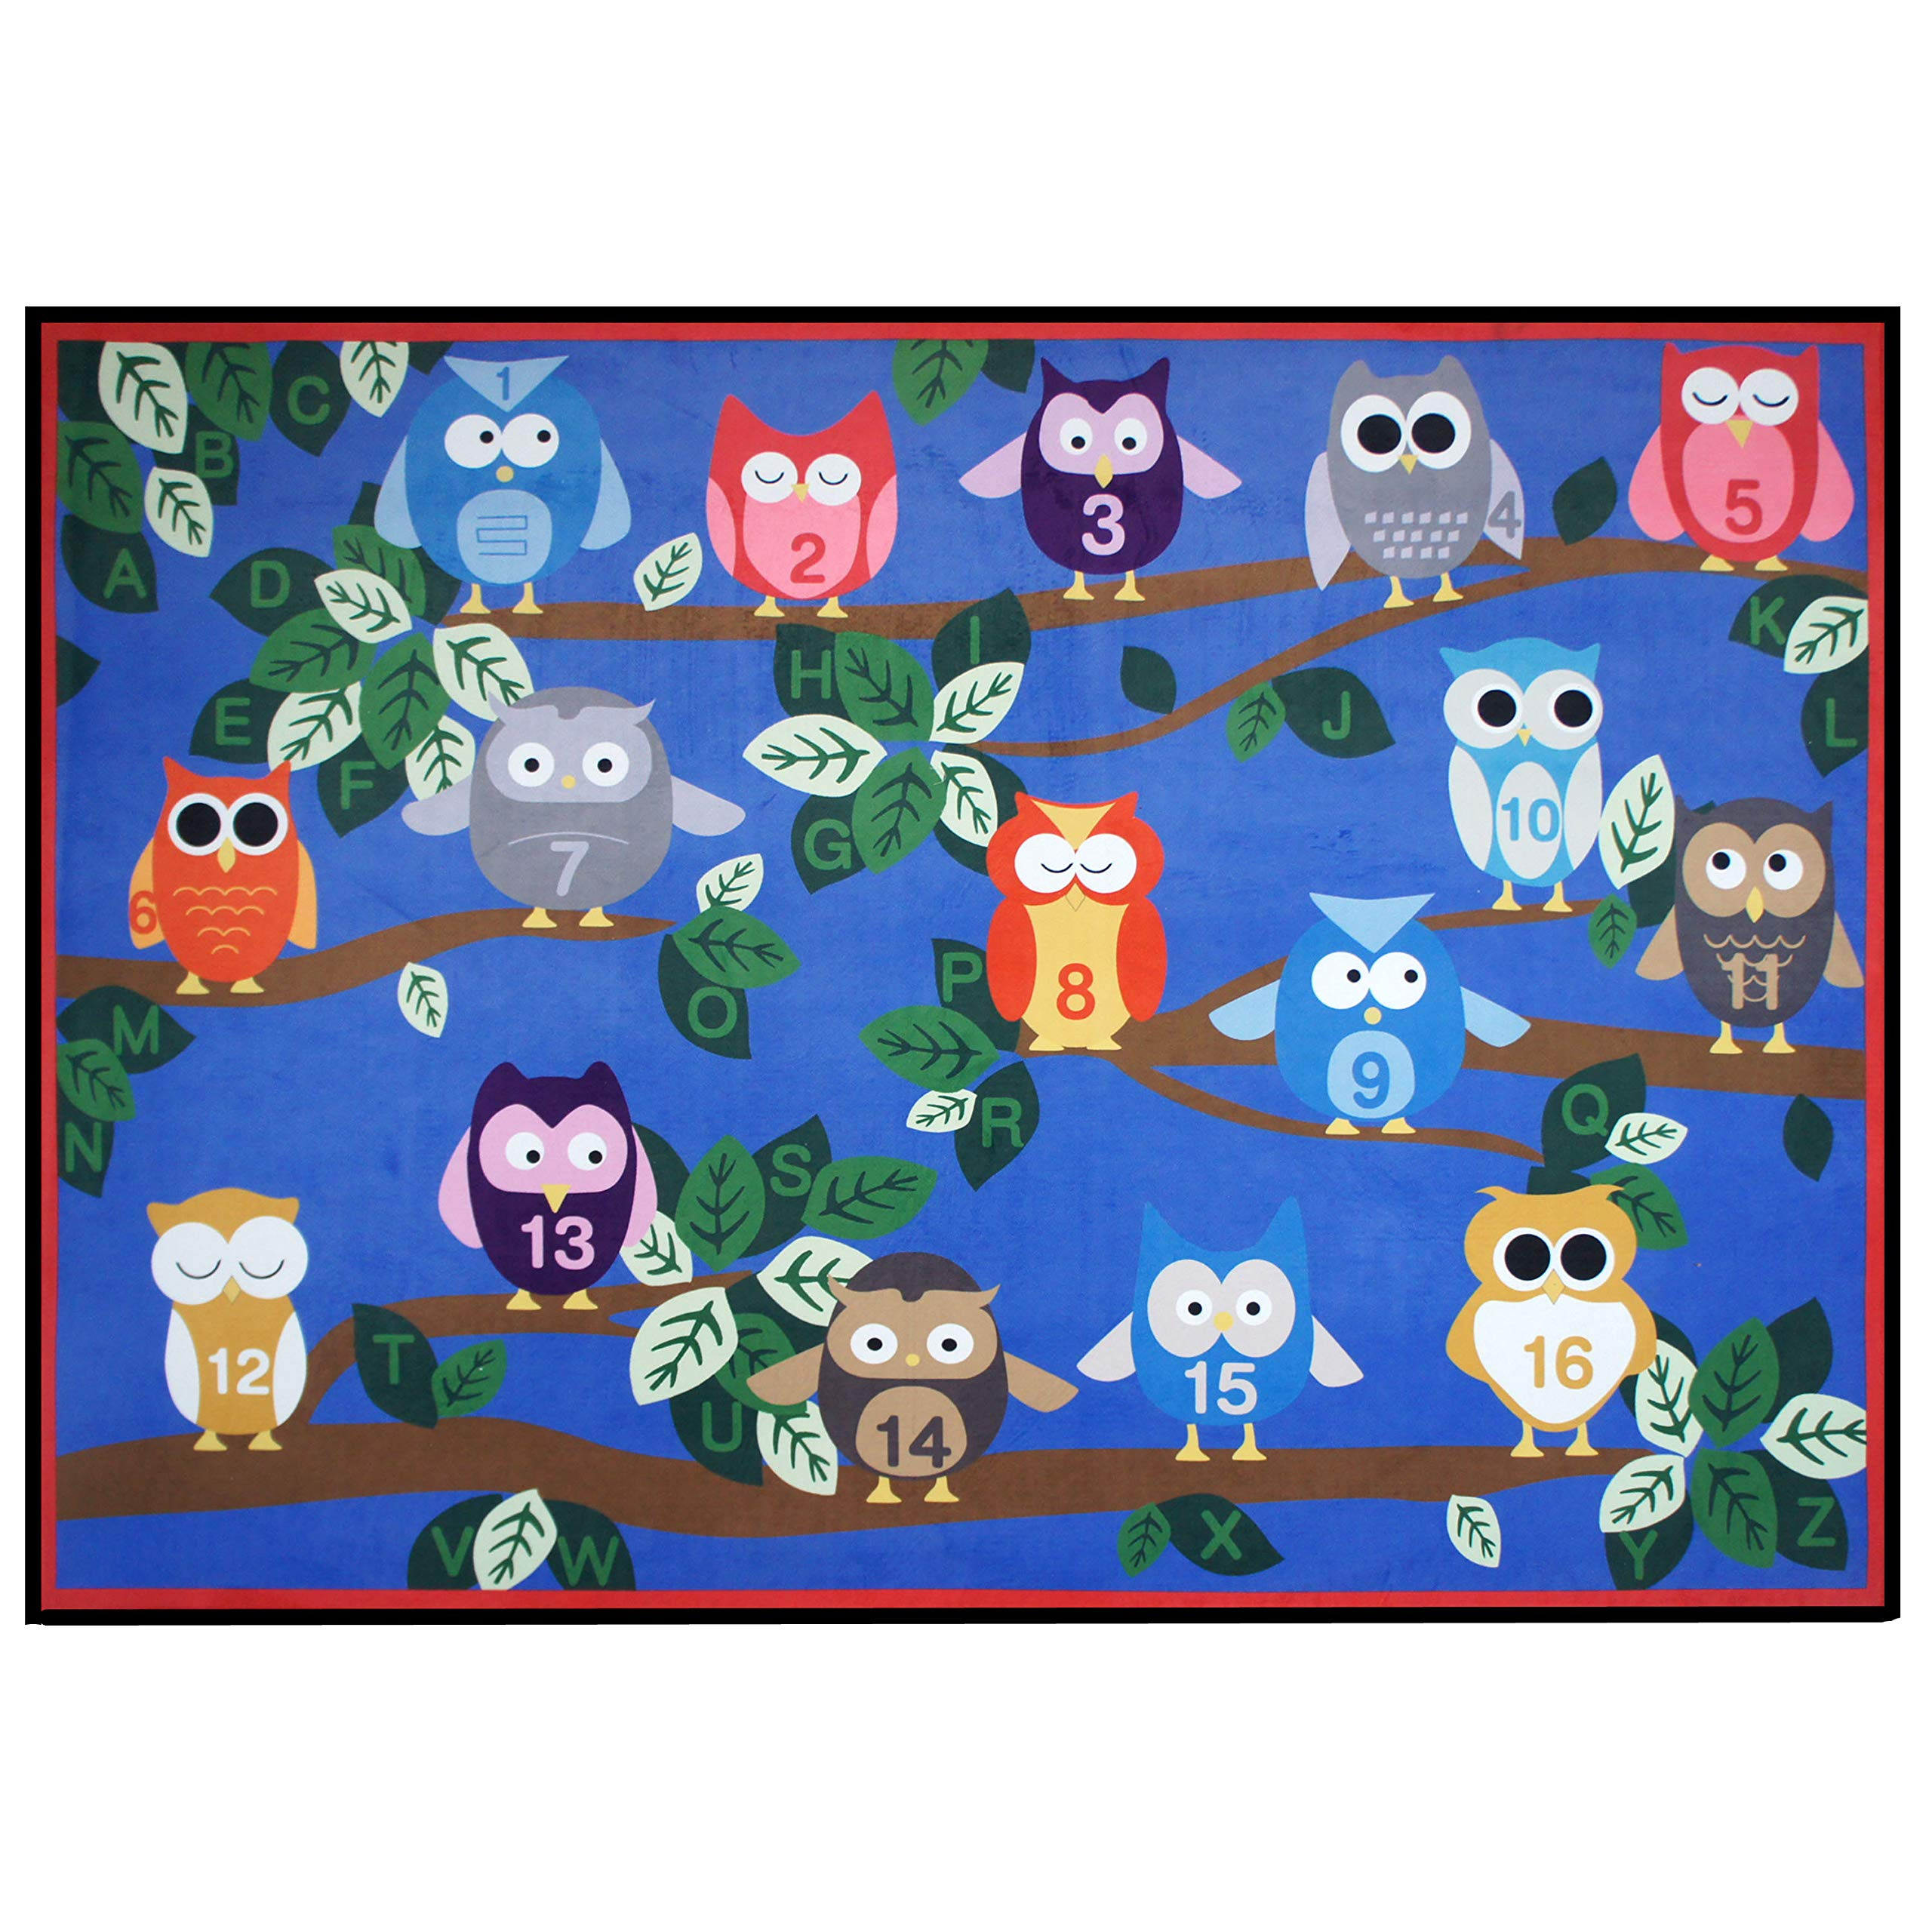 USTIDE Cute Numbers on Owl Educational Kids Rug Numbers Animal on Blue 5'x7' Bright Kids Rug for Bedroom and Playroom